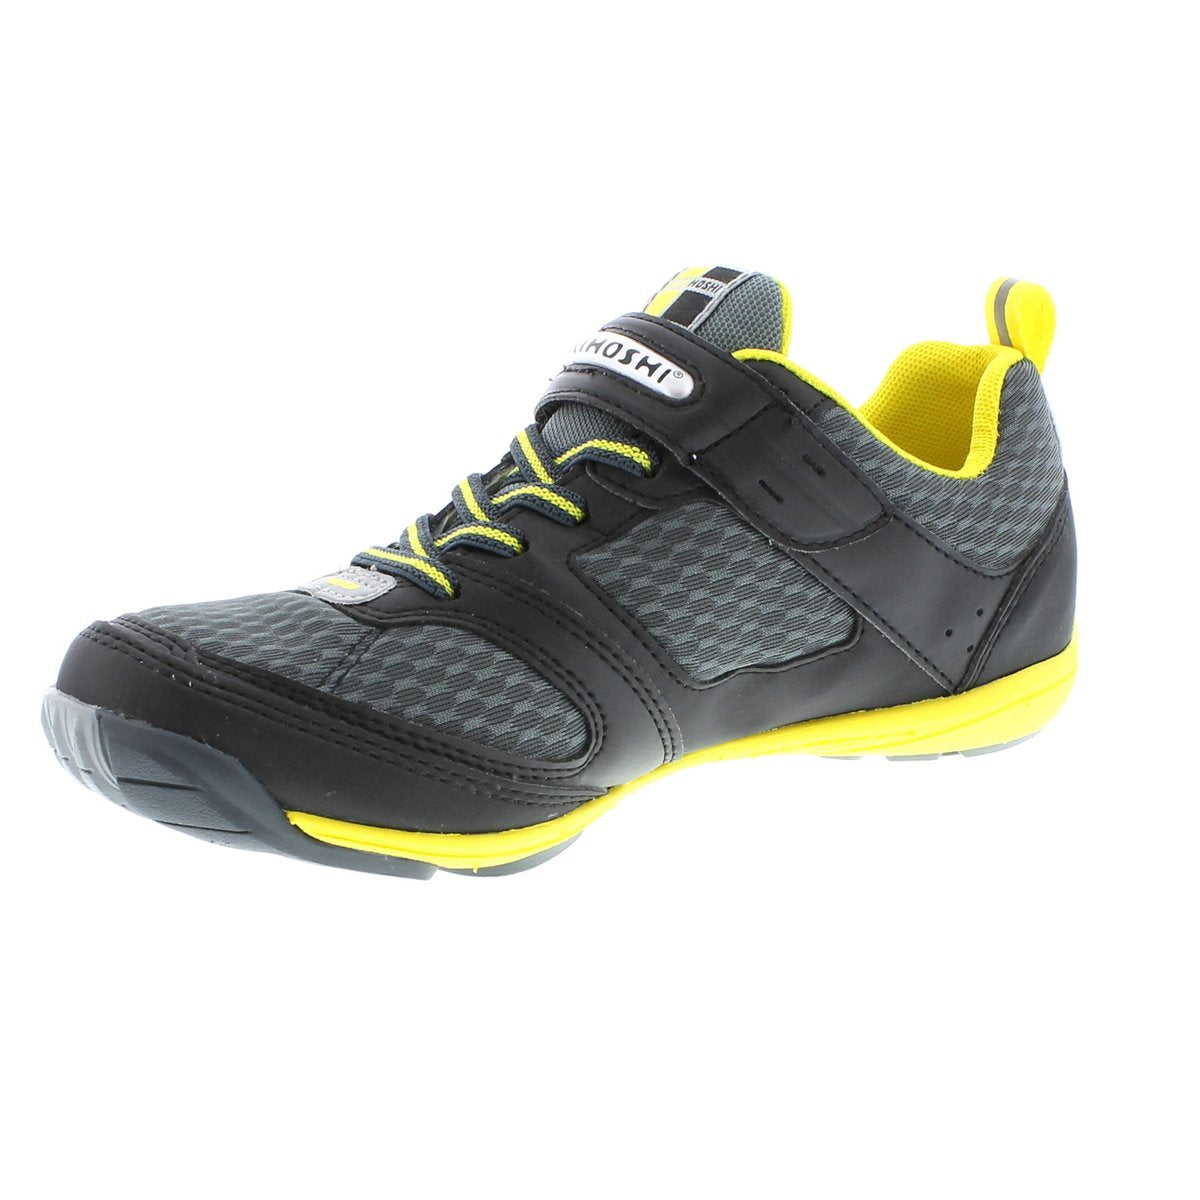 Youth Tsukihoshi Mako Sneaker in Black/Yellow from the front view